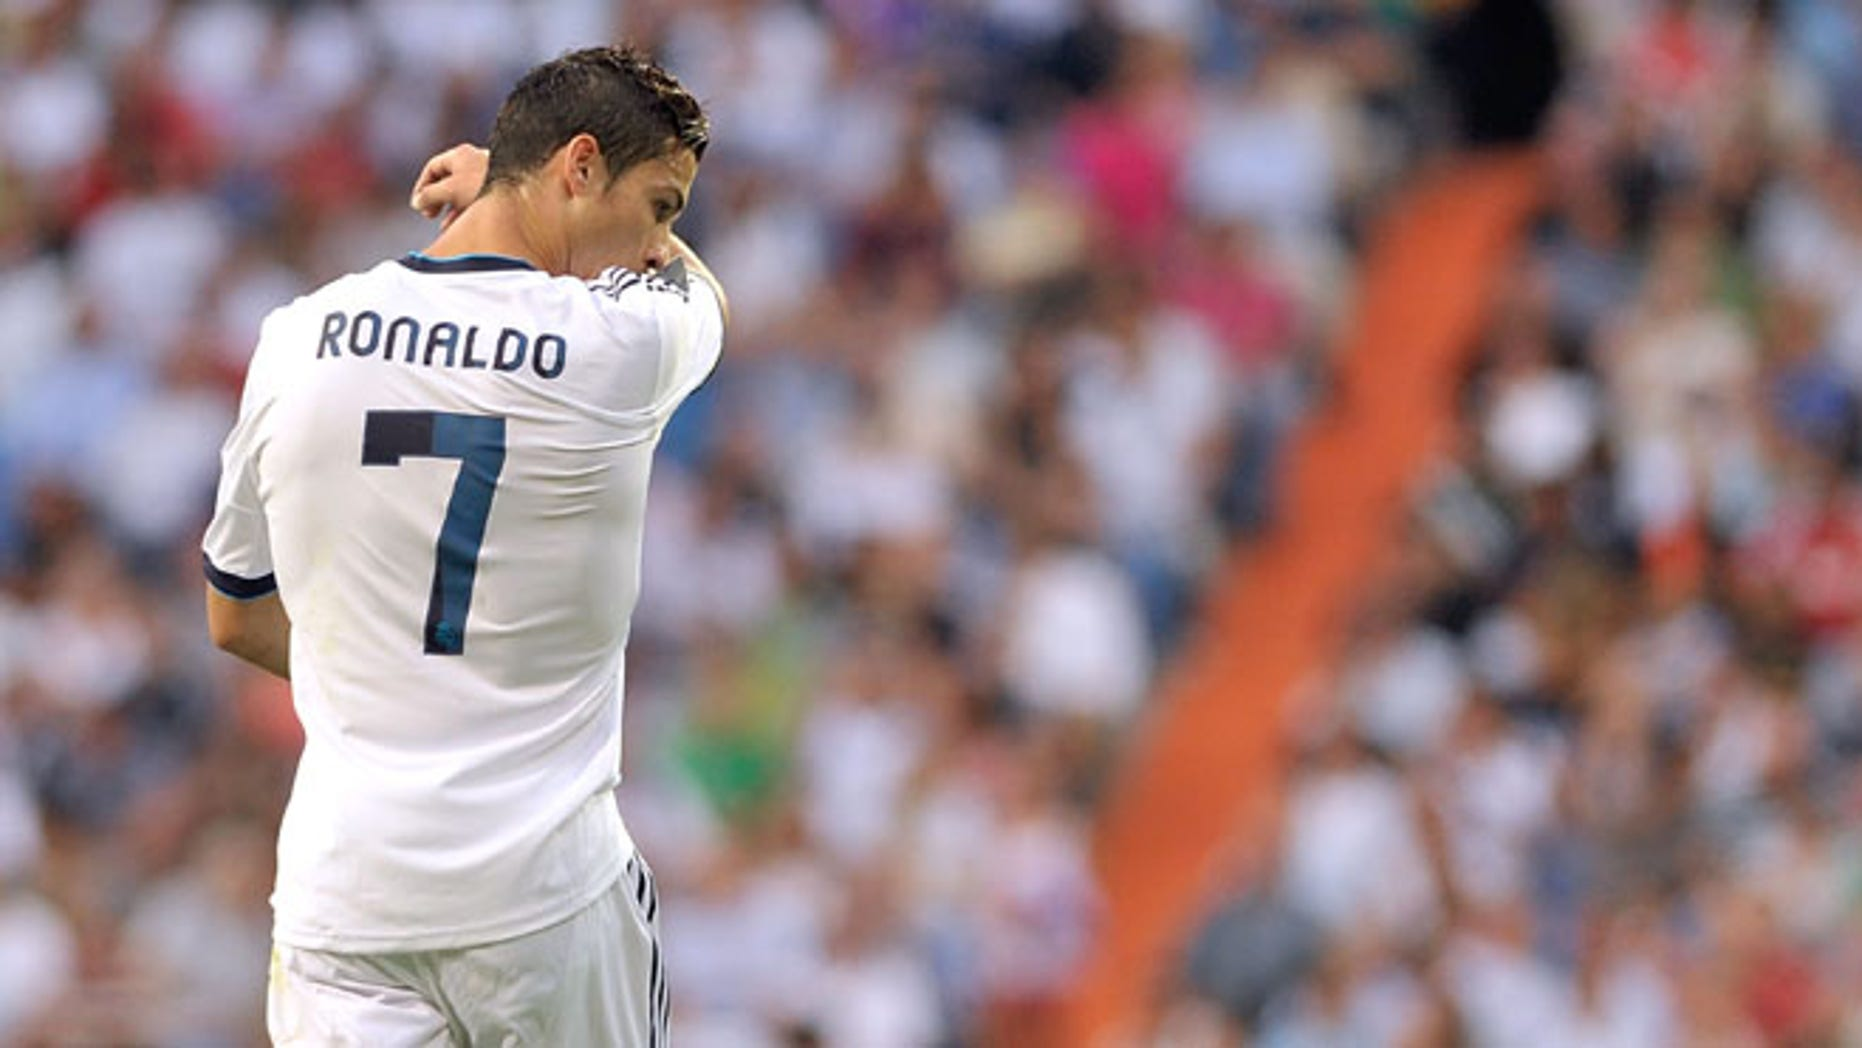 MADRID, SPAIN - SEPTEMBER 02: Cristiano Ronaldo of Real Madrid reacts during the La Liga match between Real Madrid and Granada at Estadio Santiago Bernabeu on September 2, 2012 in Madrid, Spain.  (Photo by Gonzalo Arroyo Moreno/Getty Images)